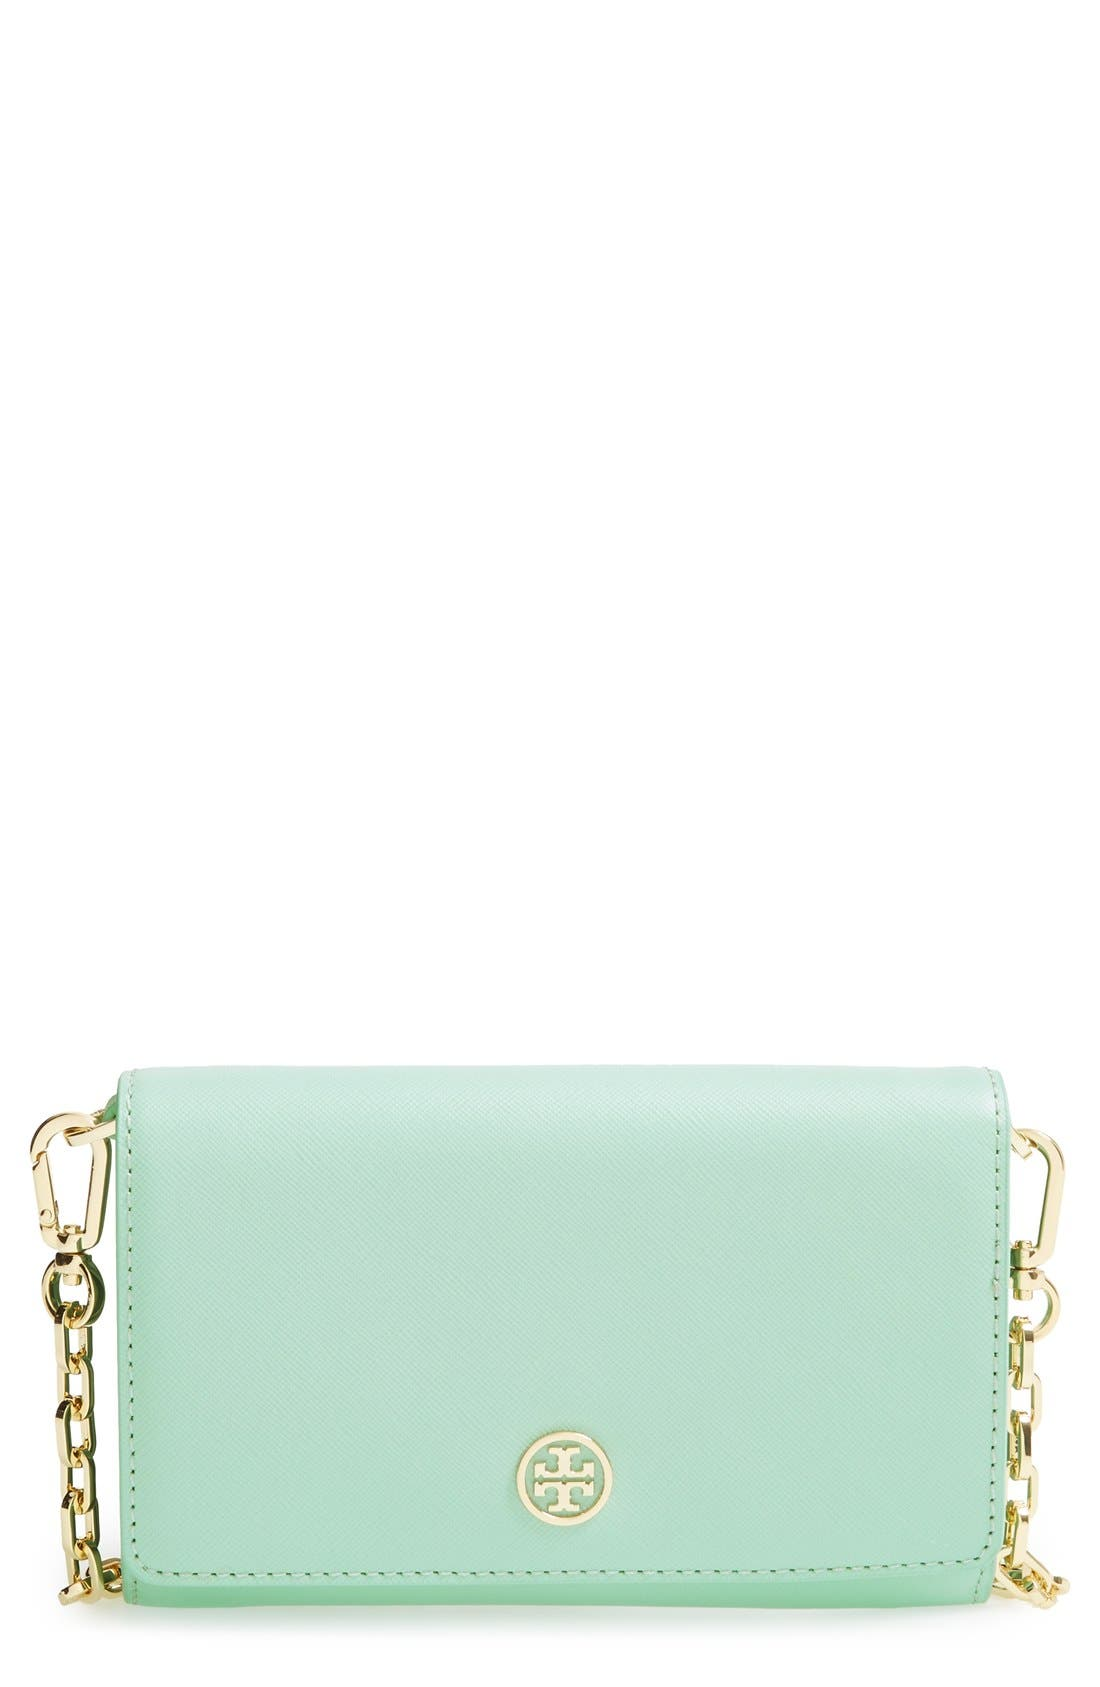 Main Image - Tory Burch 'Robinson' Leather Wallet on a Chain